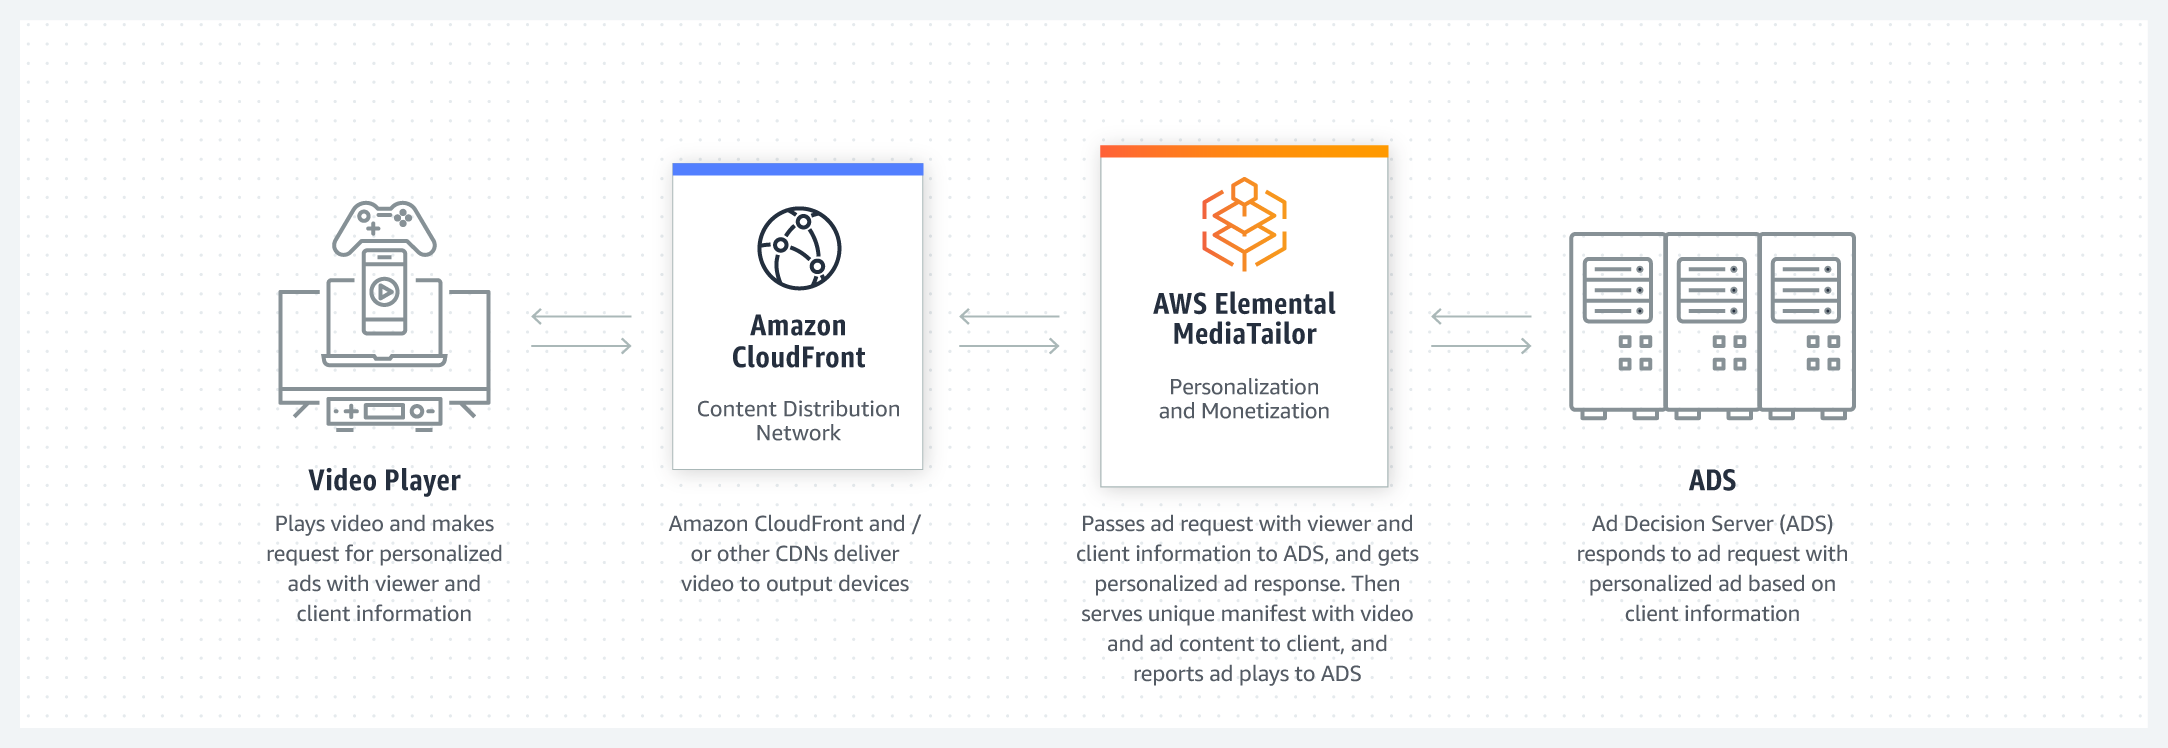 product-page-diagram_AWS_Elemental_r07_MEDIA_TAILOR_@2x